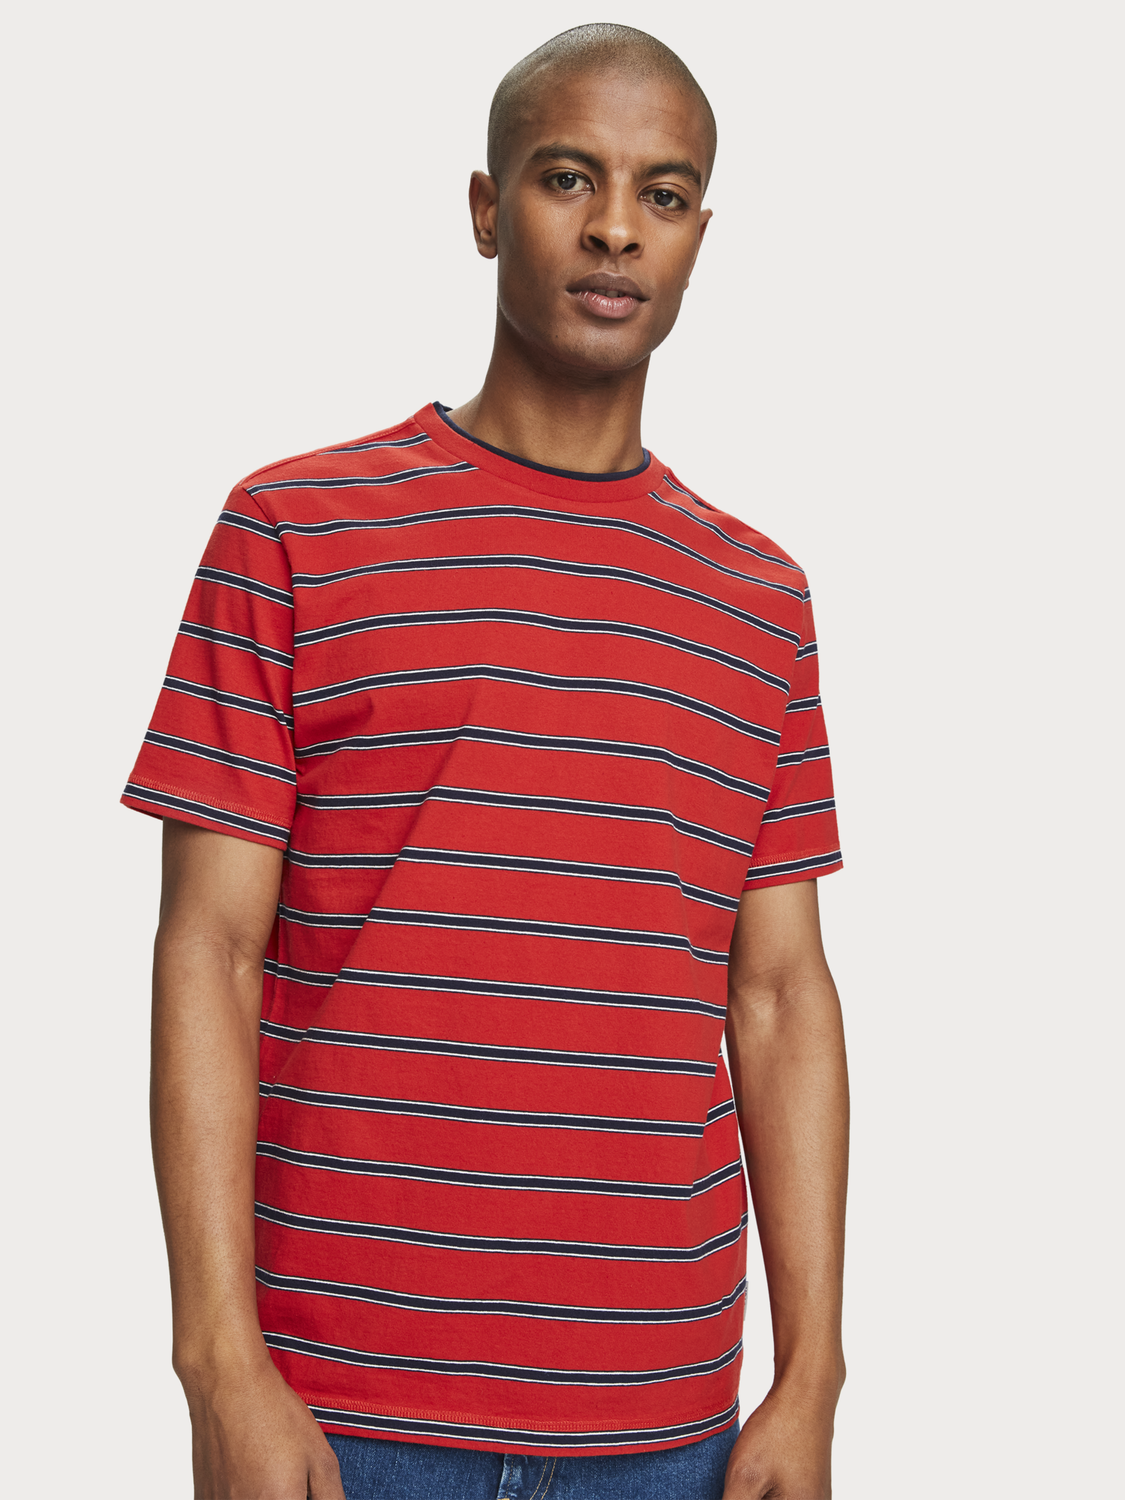 Hombre 100% cotton striped short sleeve t-shirt